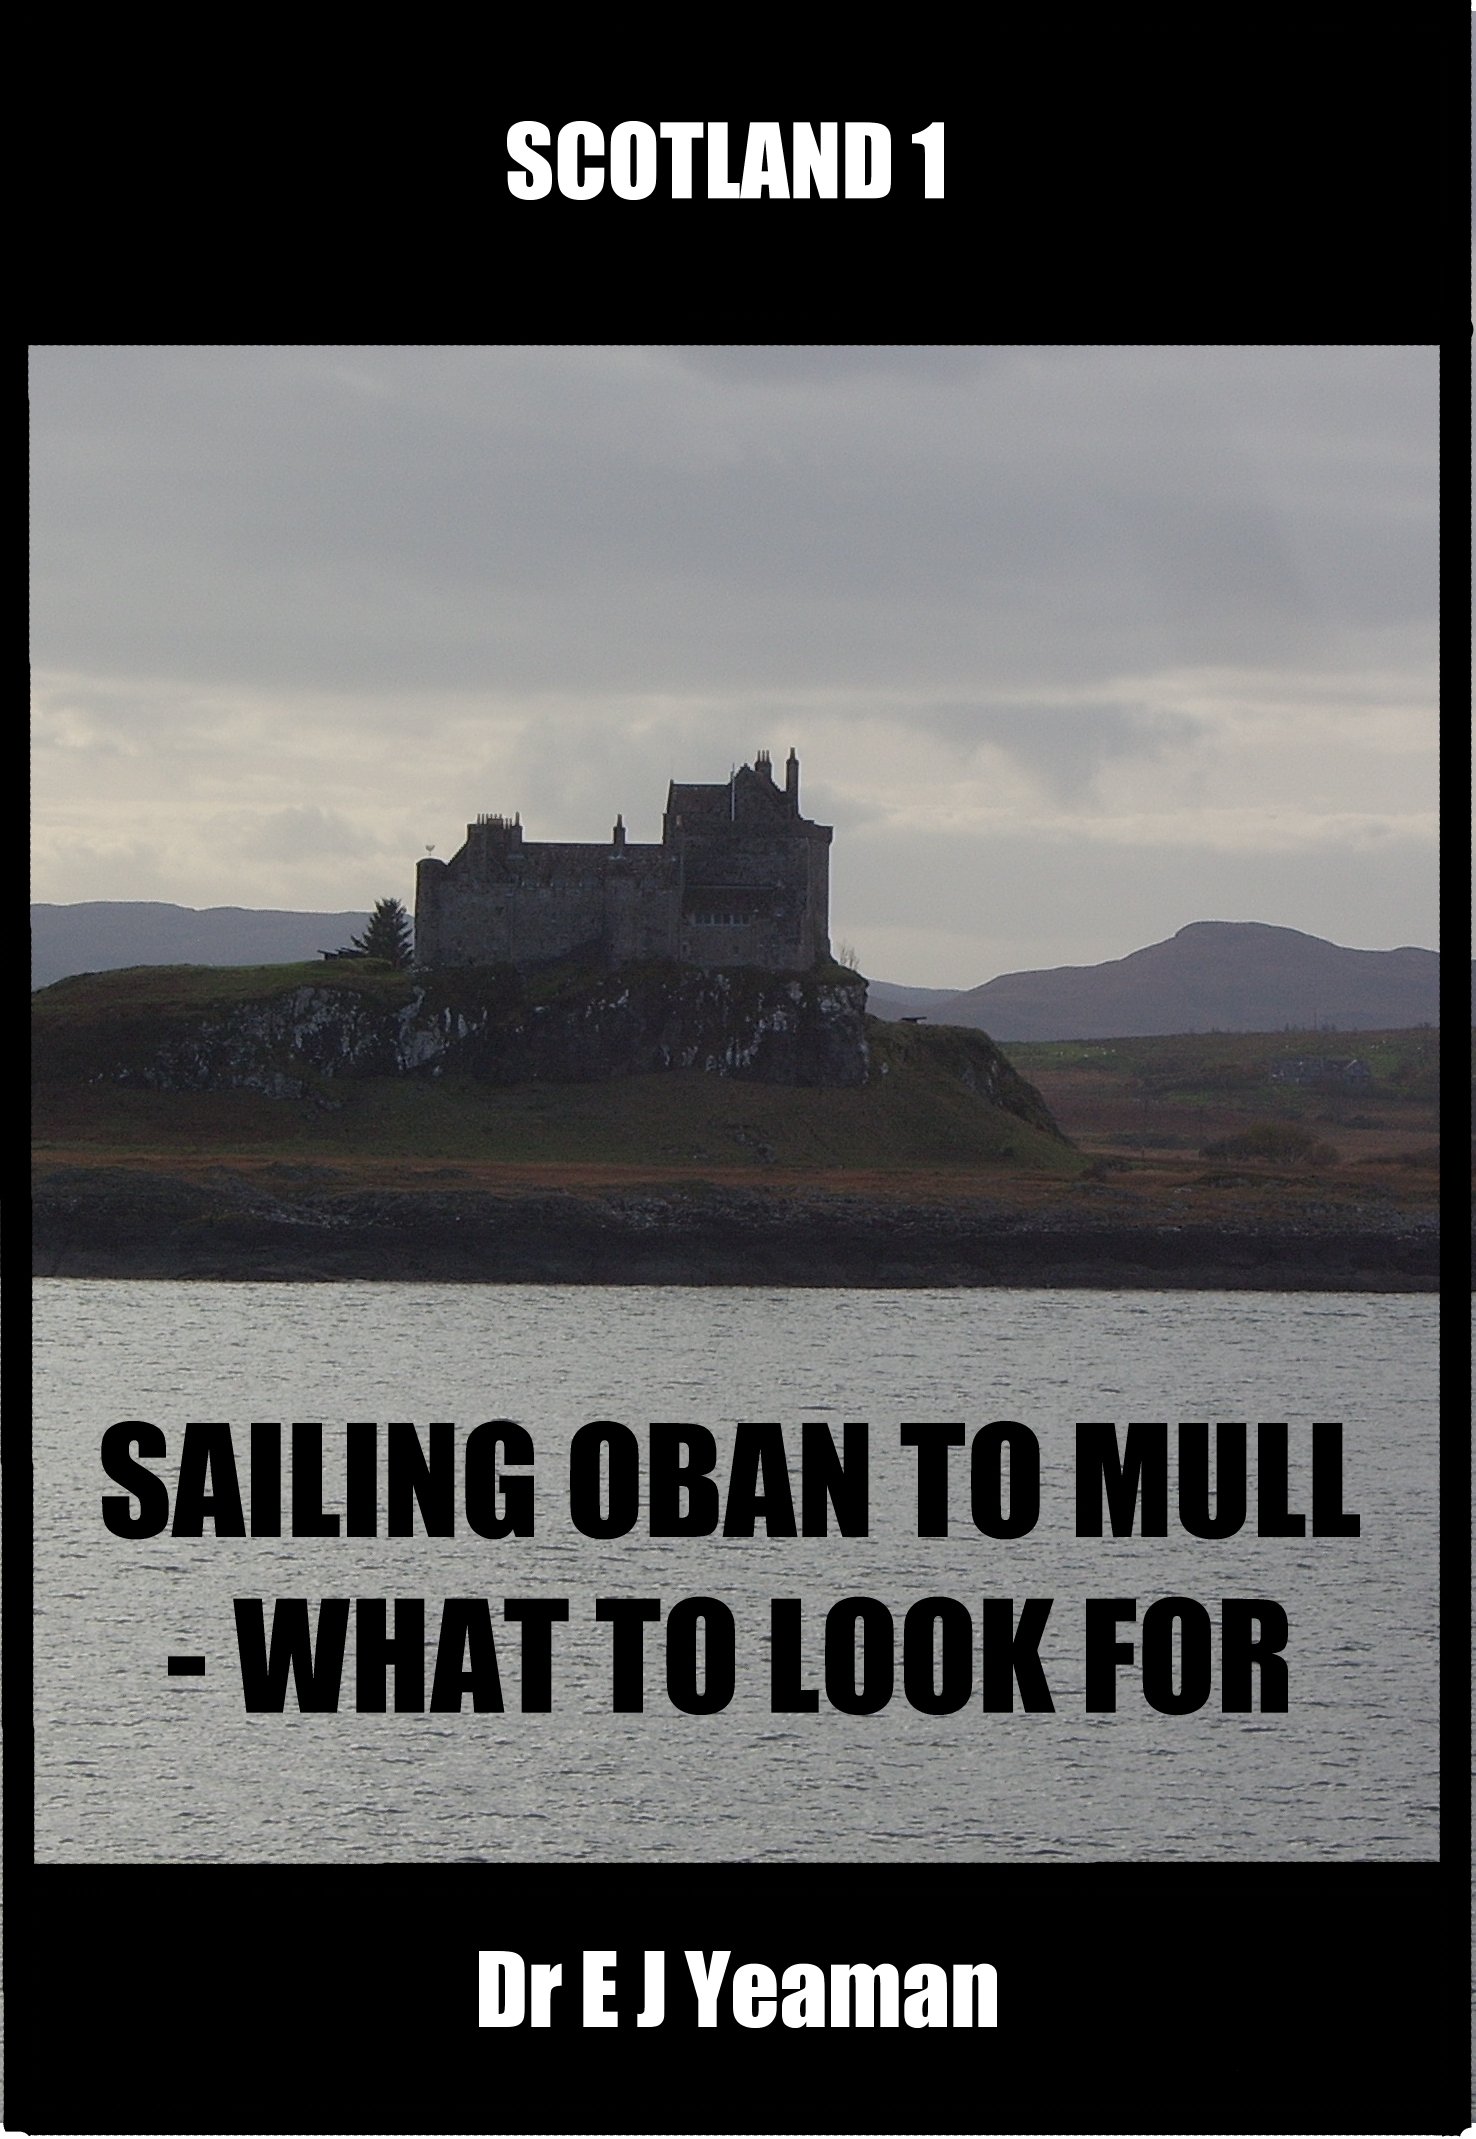 Sailing from Oban to Mull: What to Look for Dr E J Yeaman